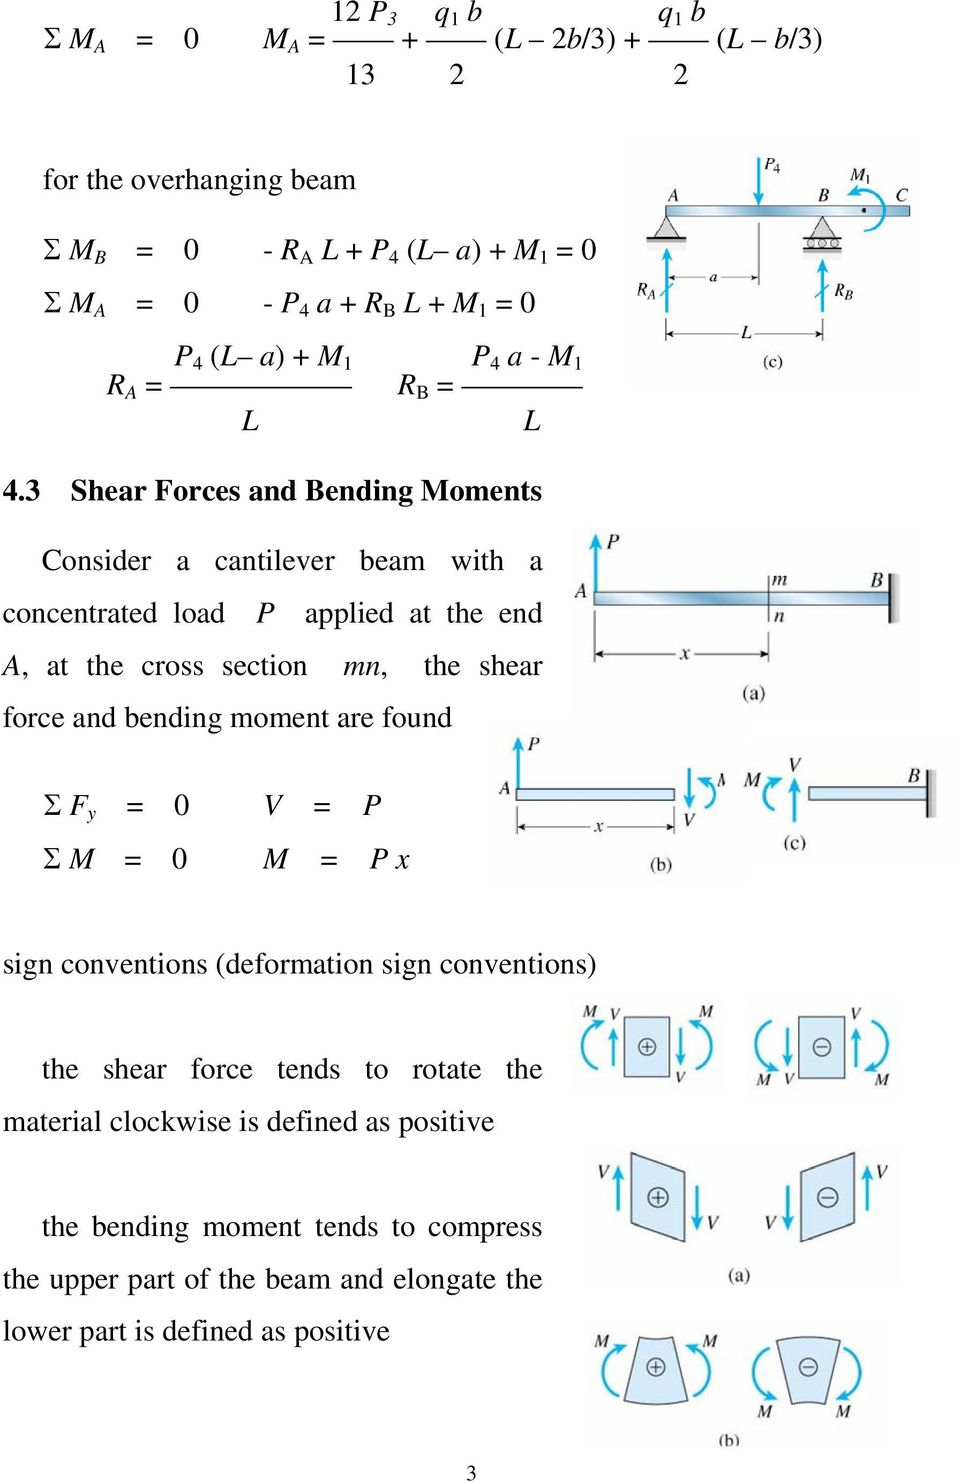 Shear Forces And Bending Moments Pdf Draw Force Moment Diagrams For The Overhanging Beam 3 Consider A Cantilever With Concentrated Load P Applied